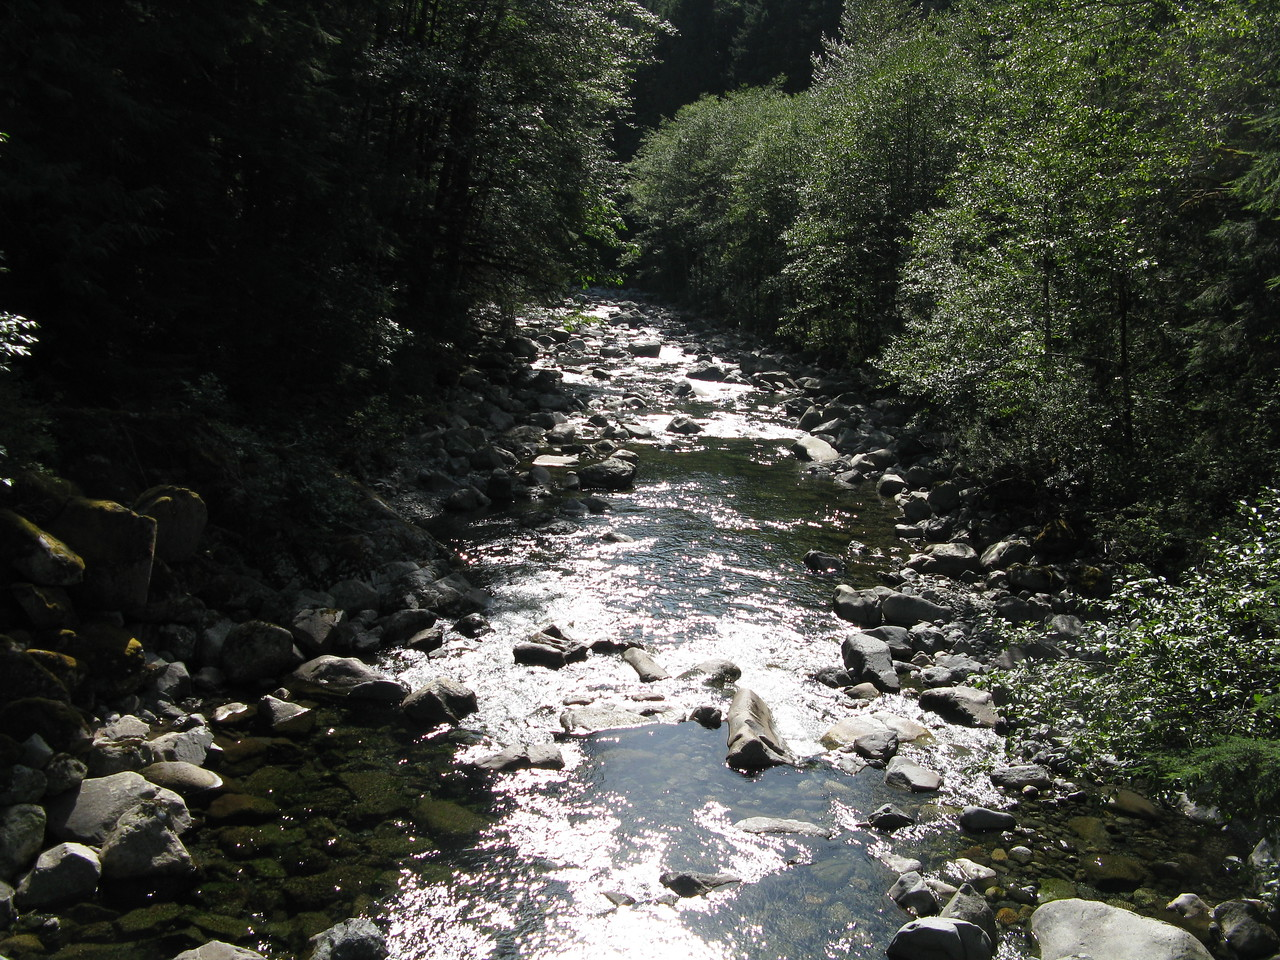 A downriver view of the Taylor RIver from the bridge at the trailhead.